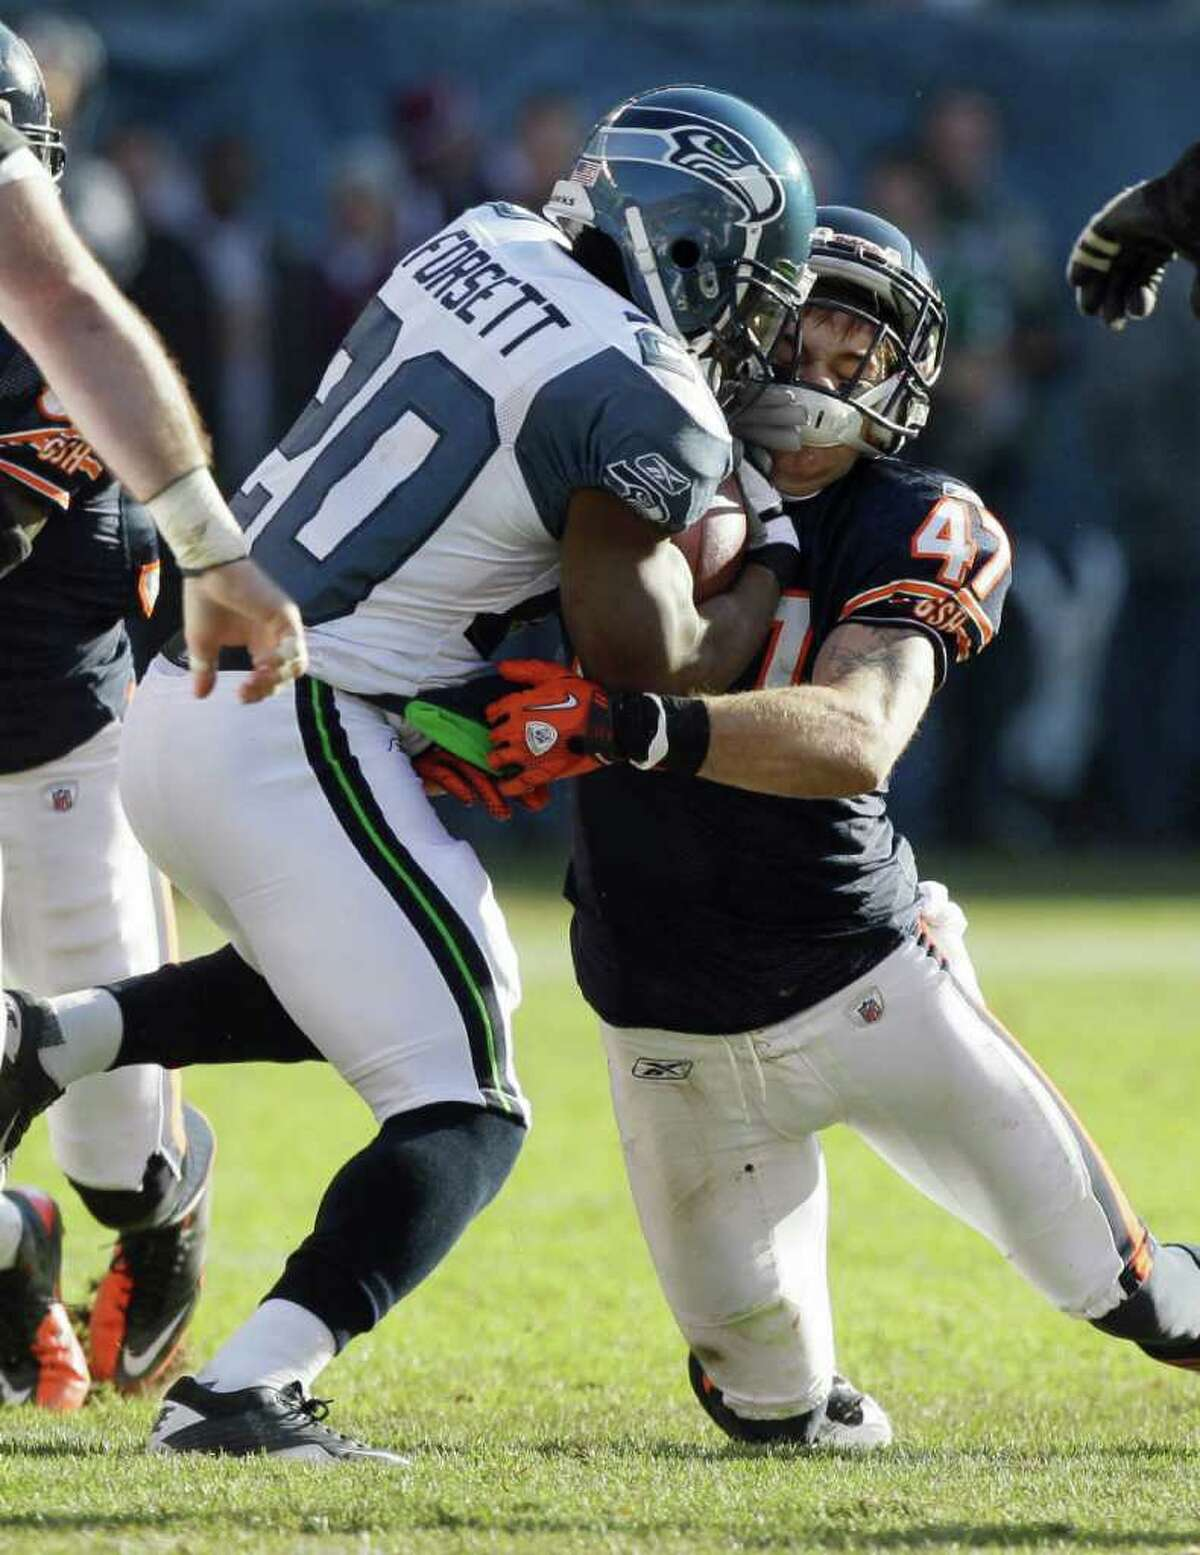 Seattle Seahawks running back Justin Forsett (20) is tackled by Chicago Bears safety Chris Conte (47) in the first half of an NFL football game in Chicago, Sunday, Dec. 18, 2011.